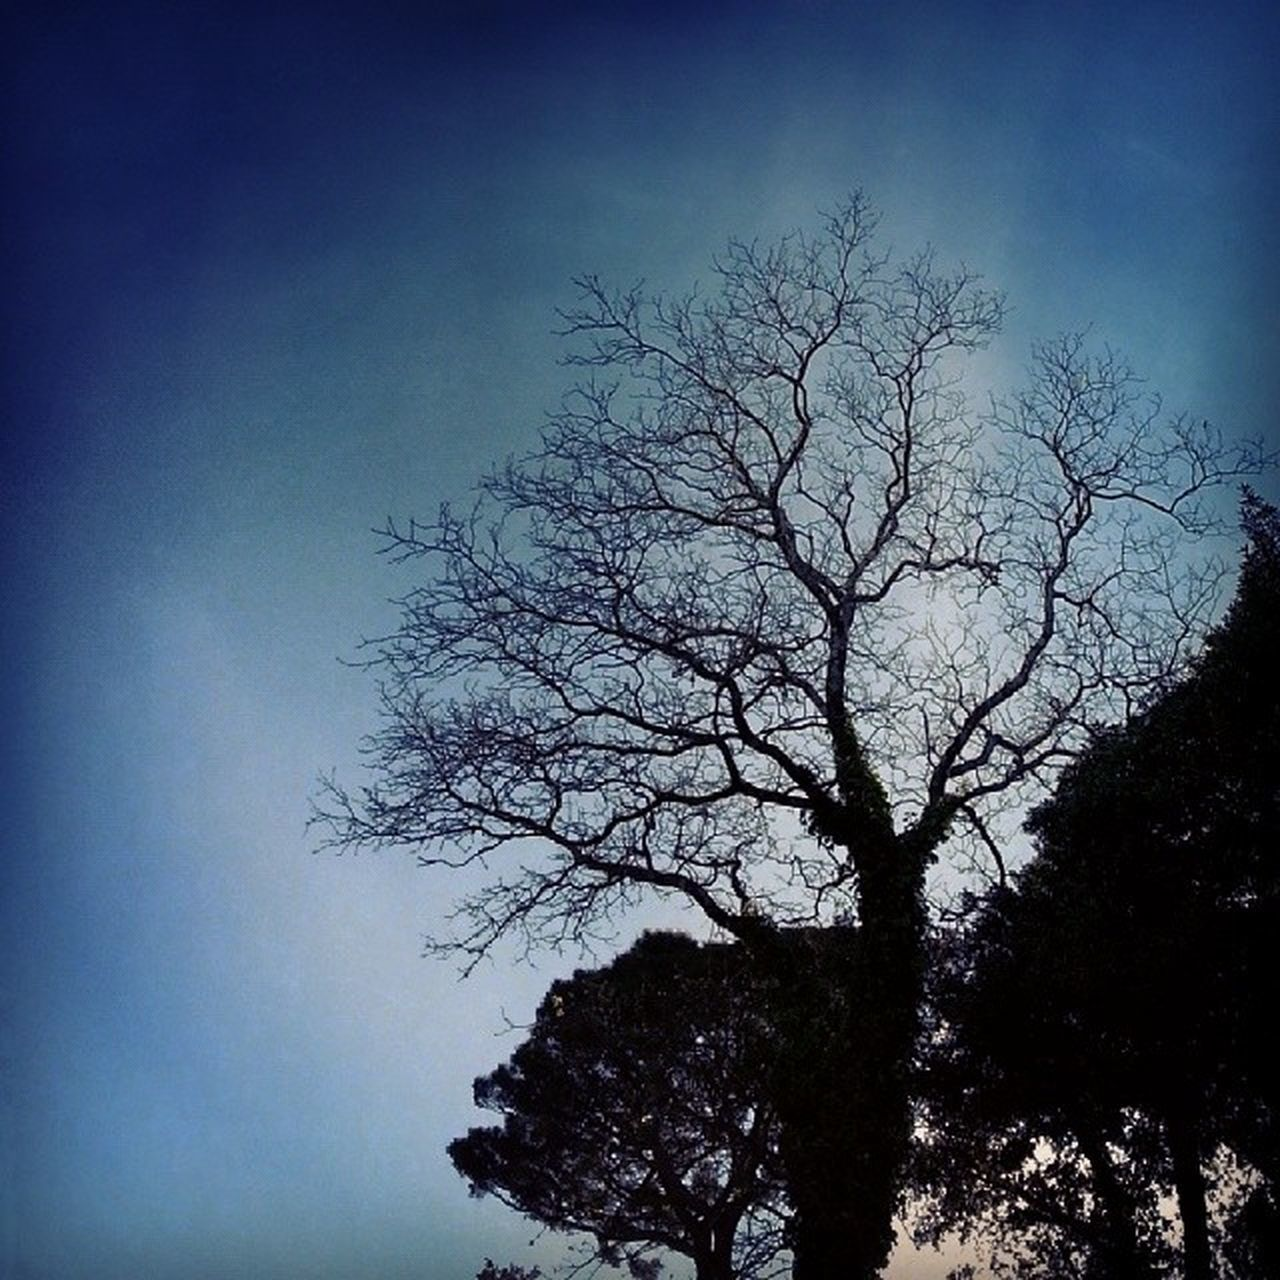 tree, silhouette, nature, beauty in nature, branch, sky, bare tree, no people, outdoors, day